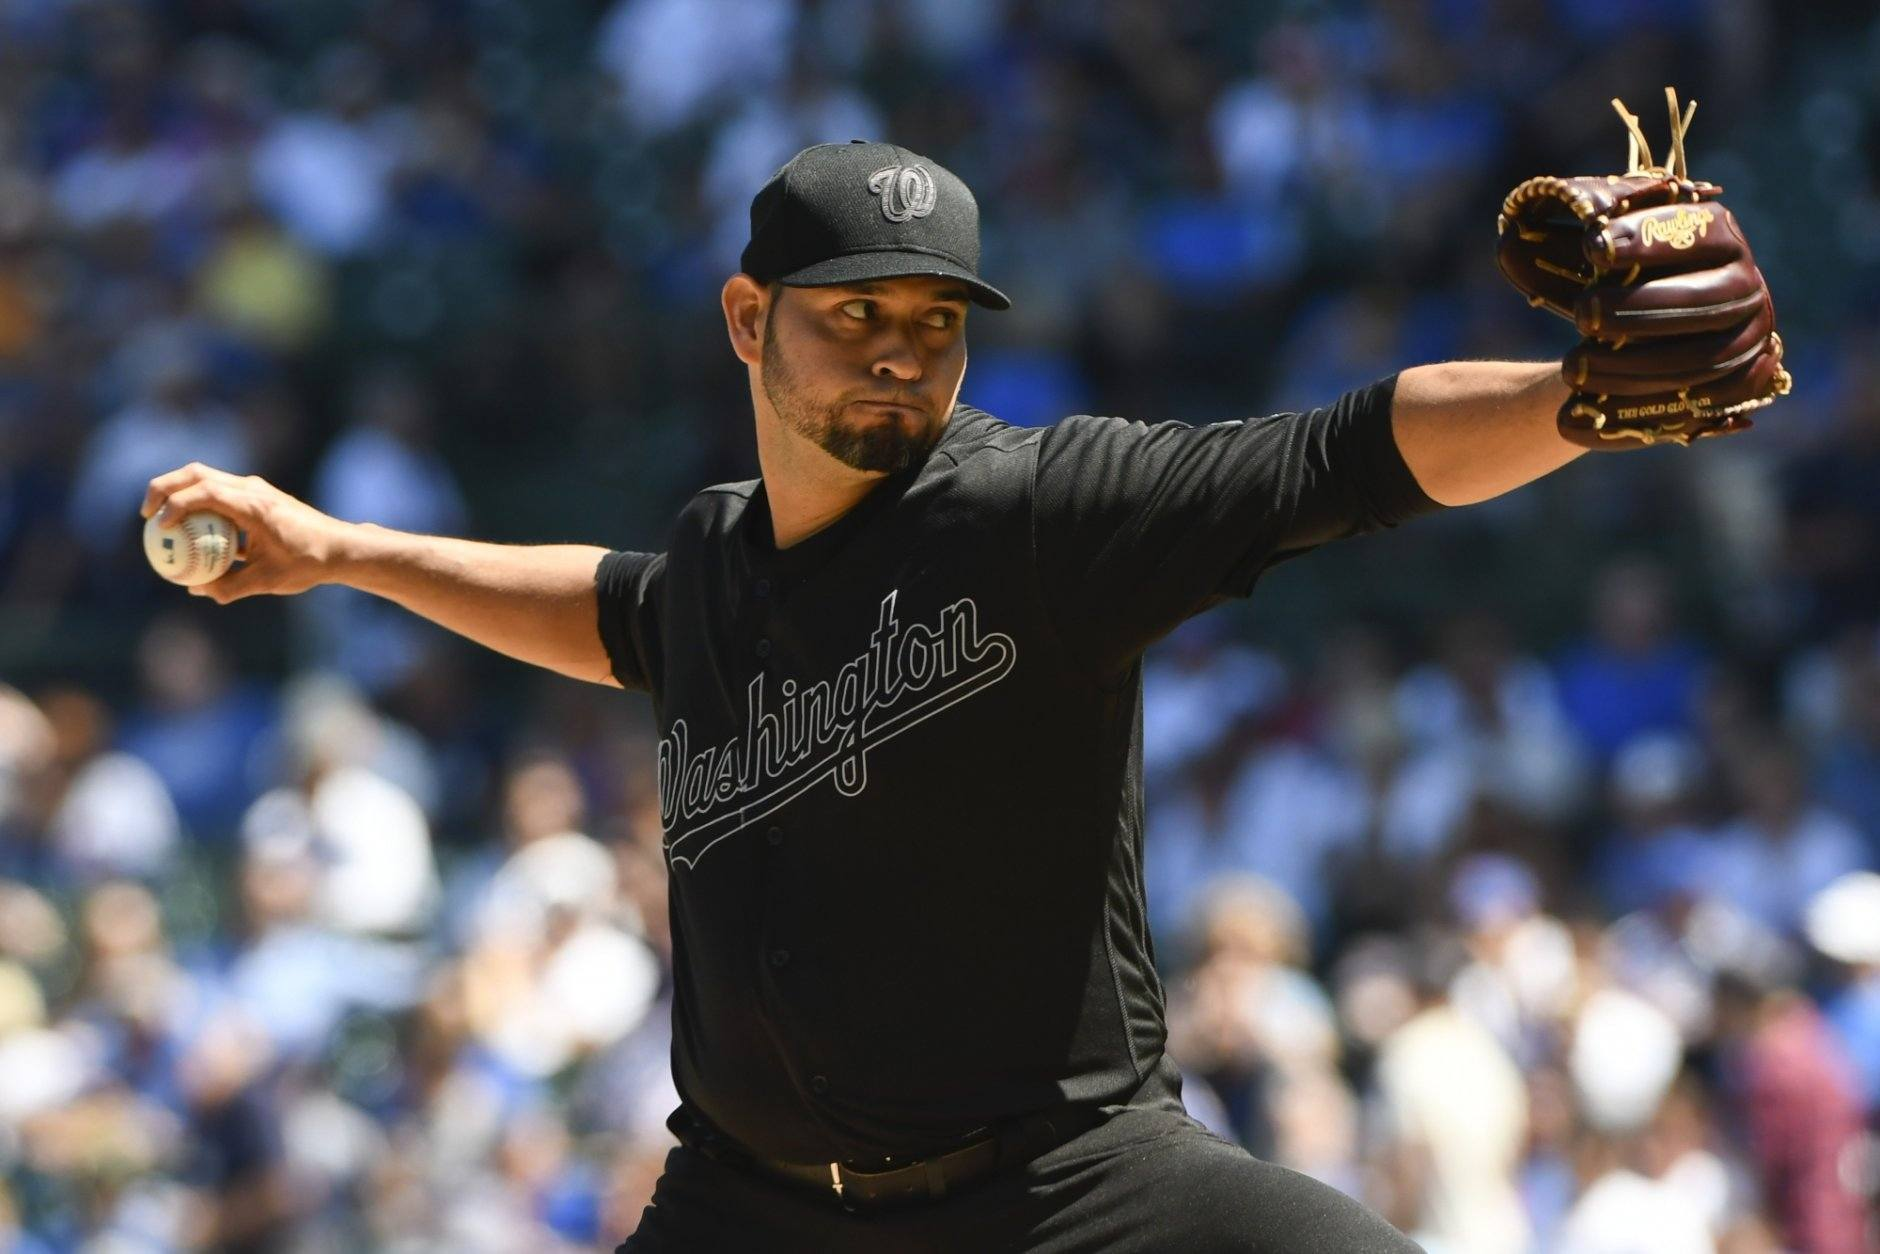 Washington Nationals starting pitcher Anibel Sanchez (19) delivers during the first inning of a baseball game against Chicago Cubs the Friday, Aug. 23, 2019, in Chicago. (AP Photo/Matt Marton)